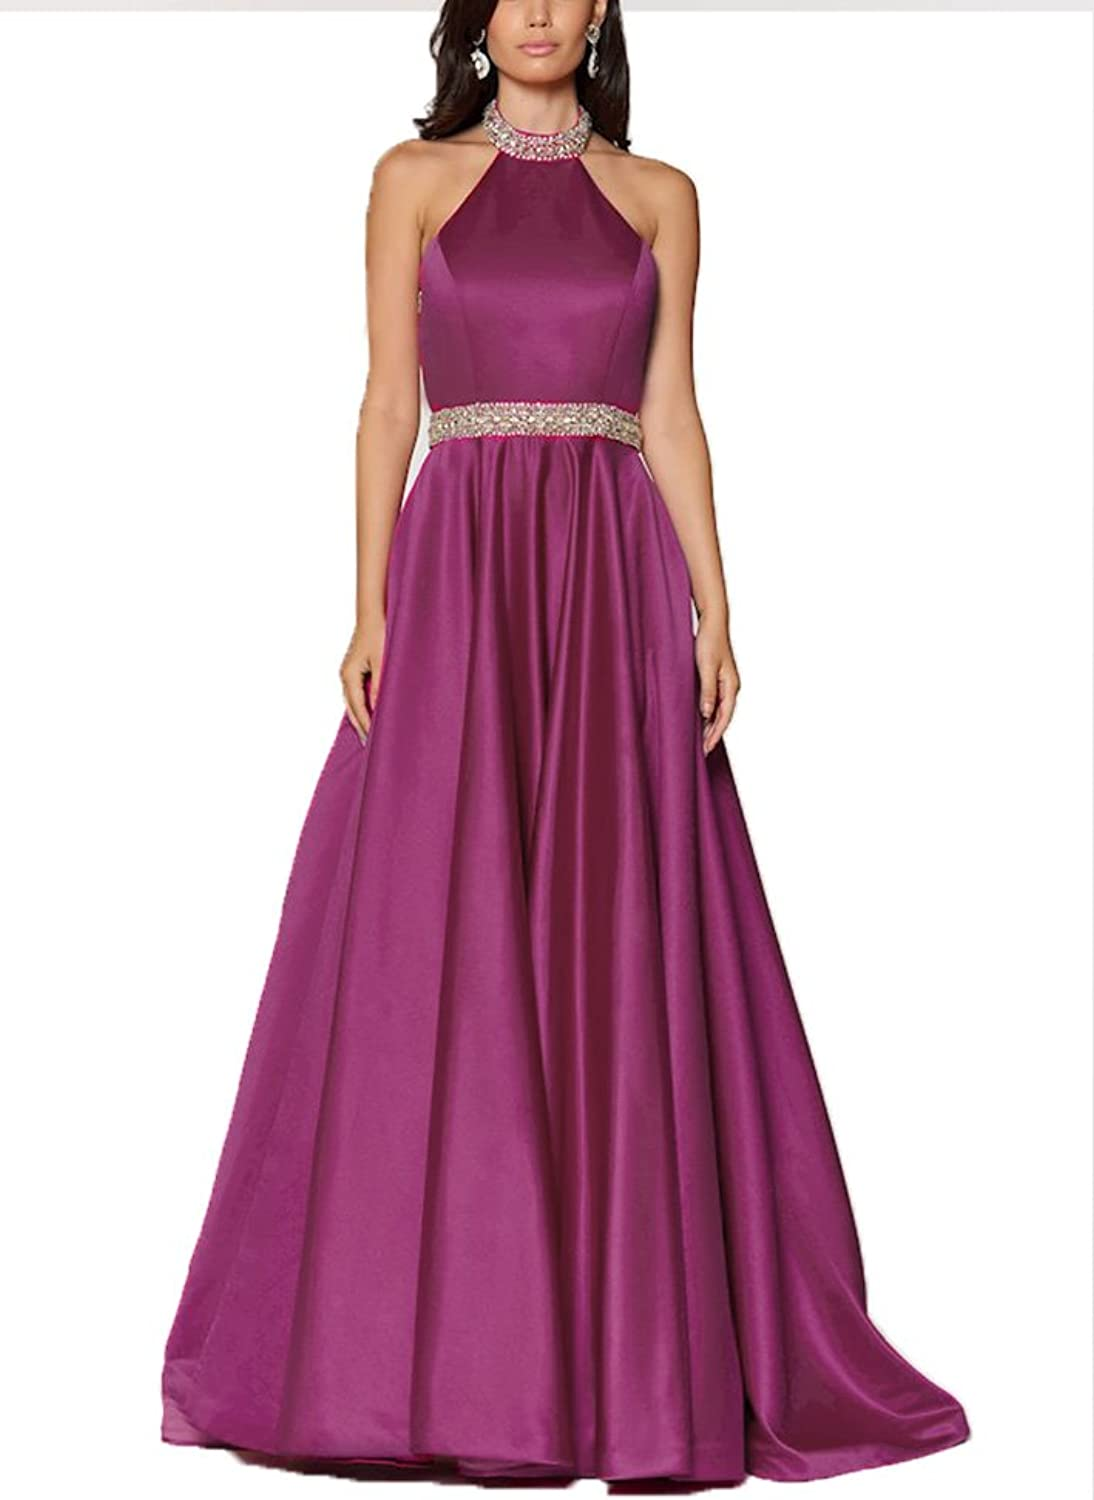 Awishwill Women's Off Shoulder Beaded Prom Dress Long Satin Evening Formal Party Gown